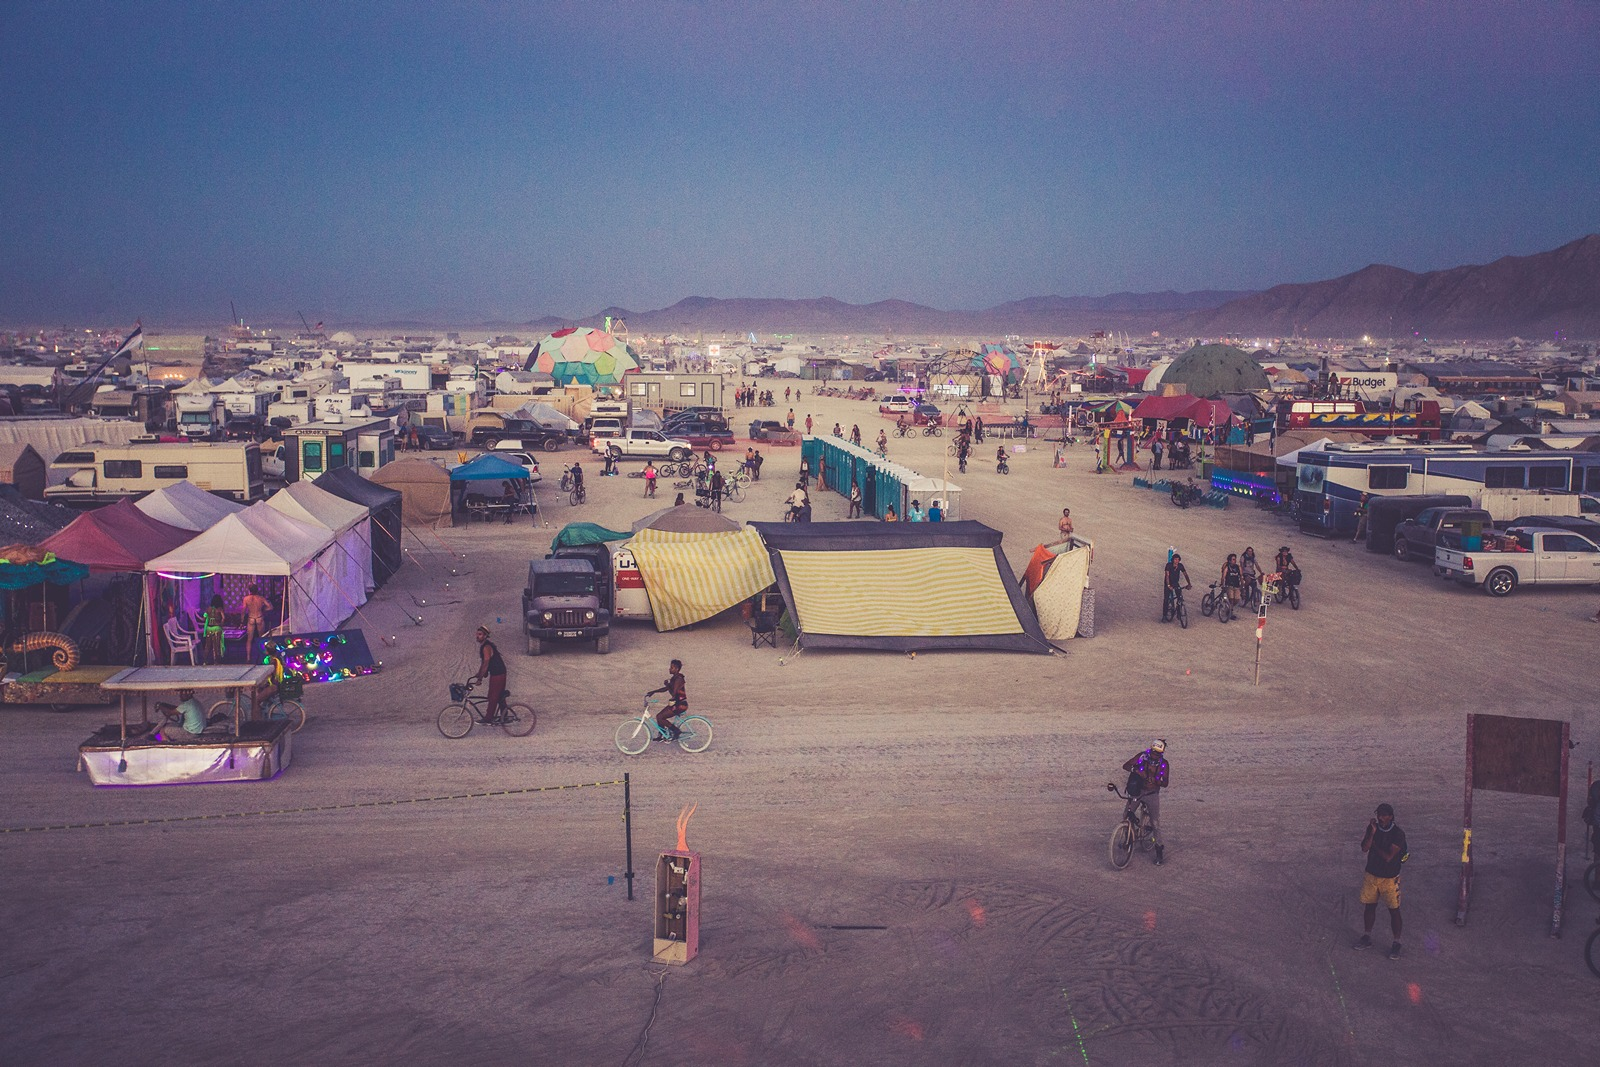 Burning Man - The night starts